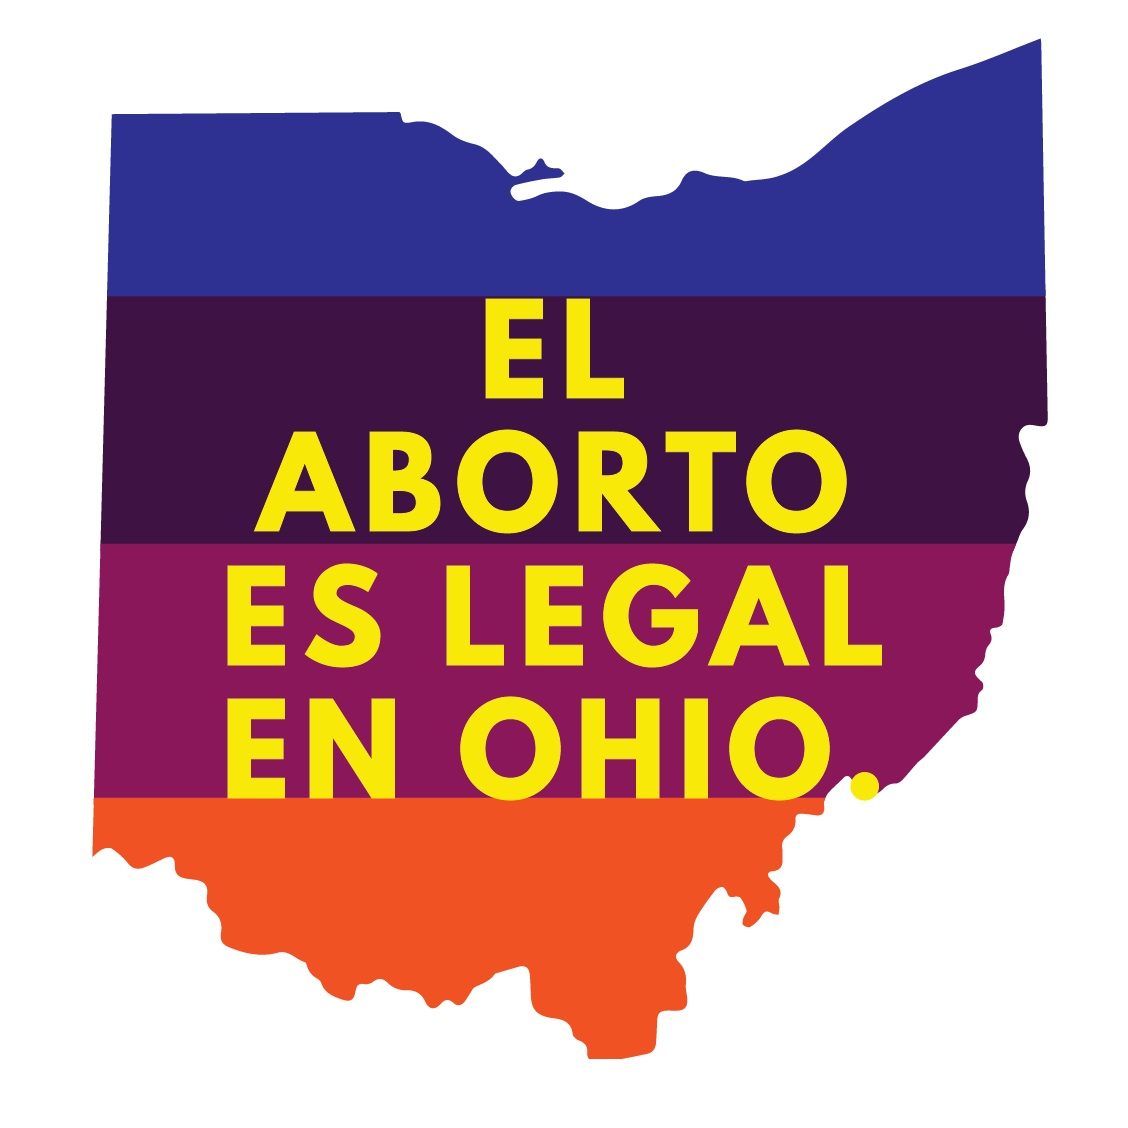 el_aborto_es_legal_en_ohio.jpg